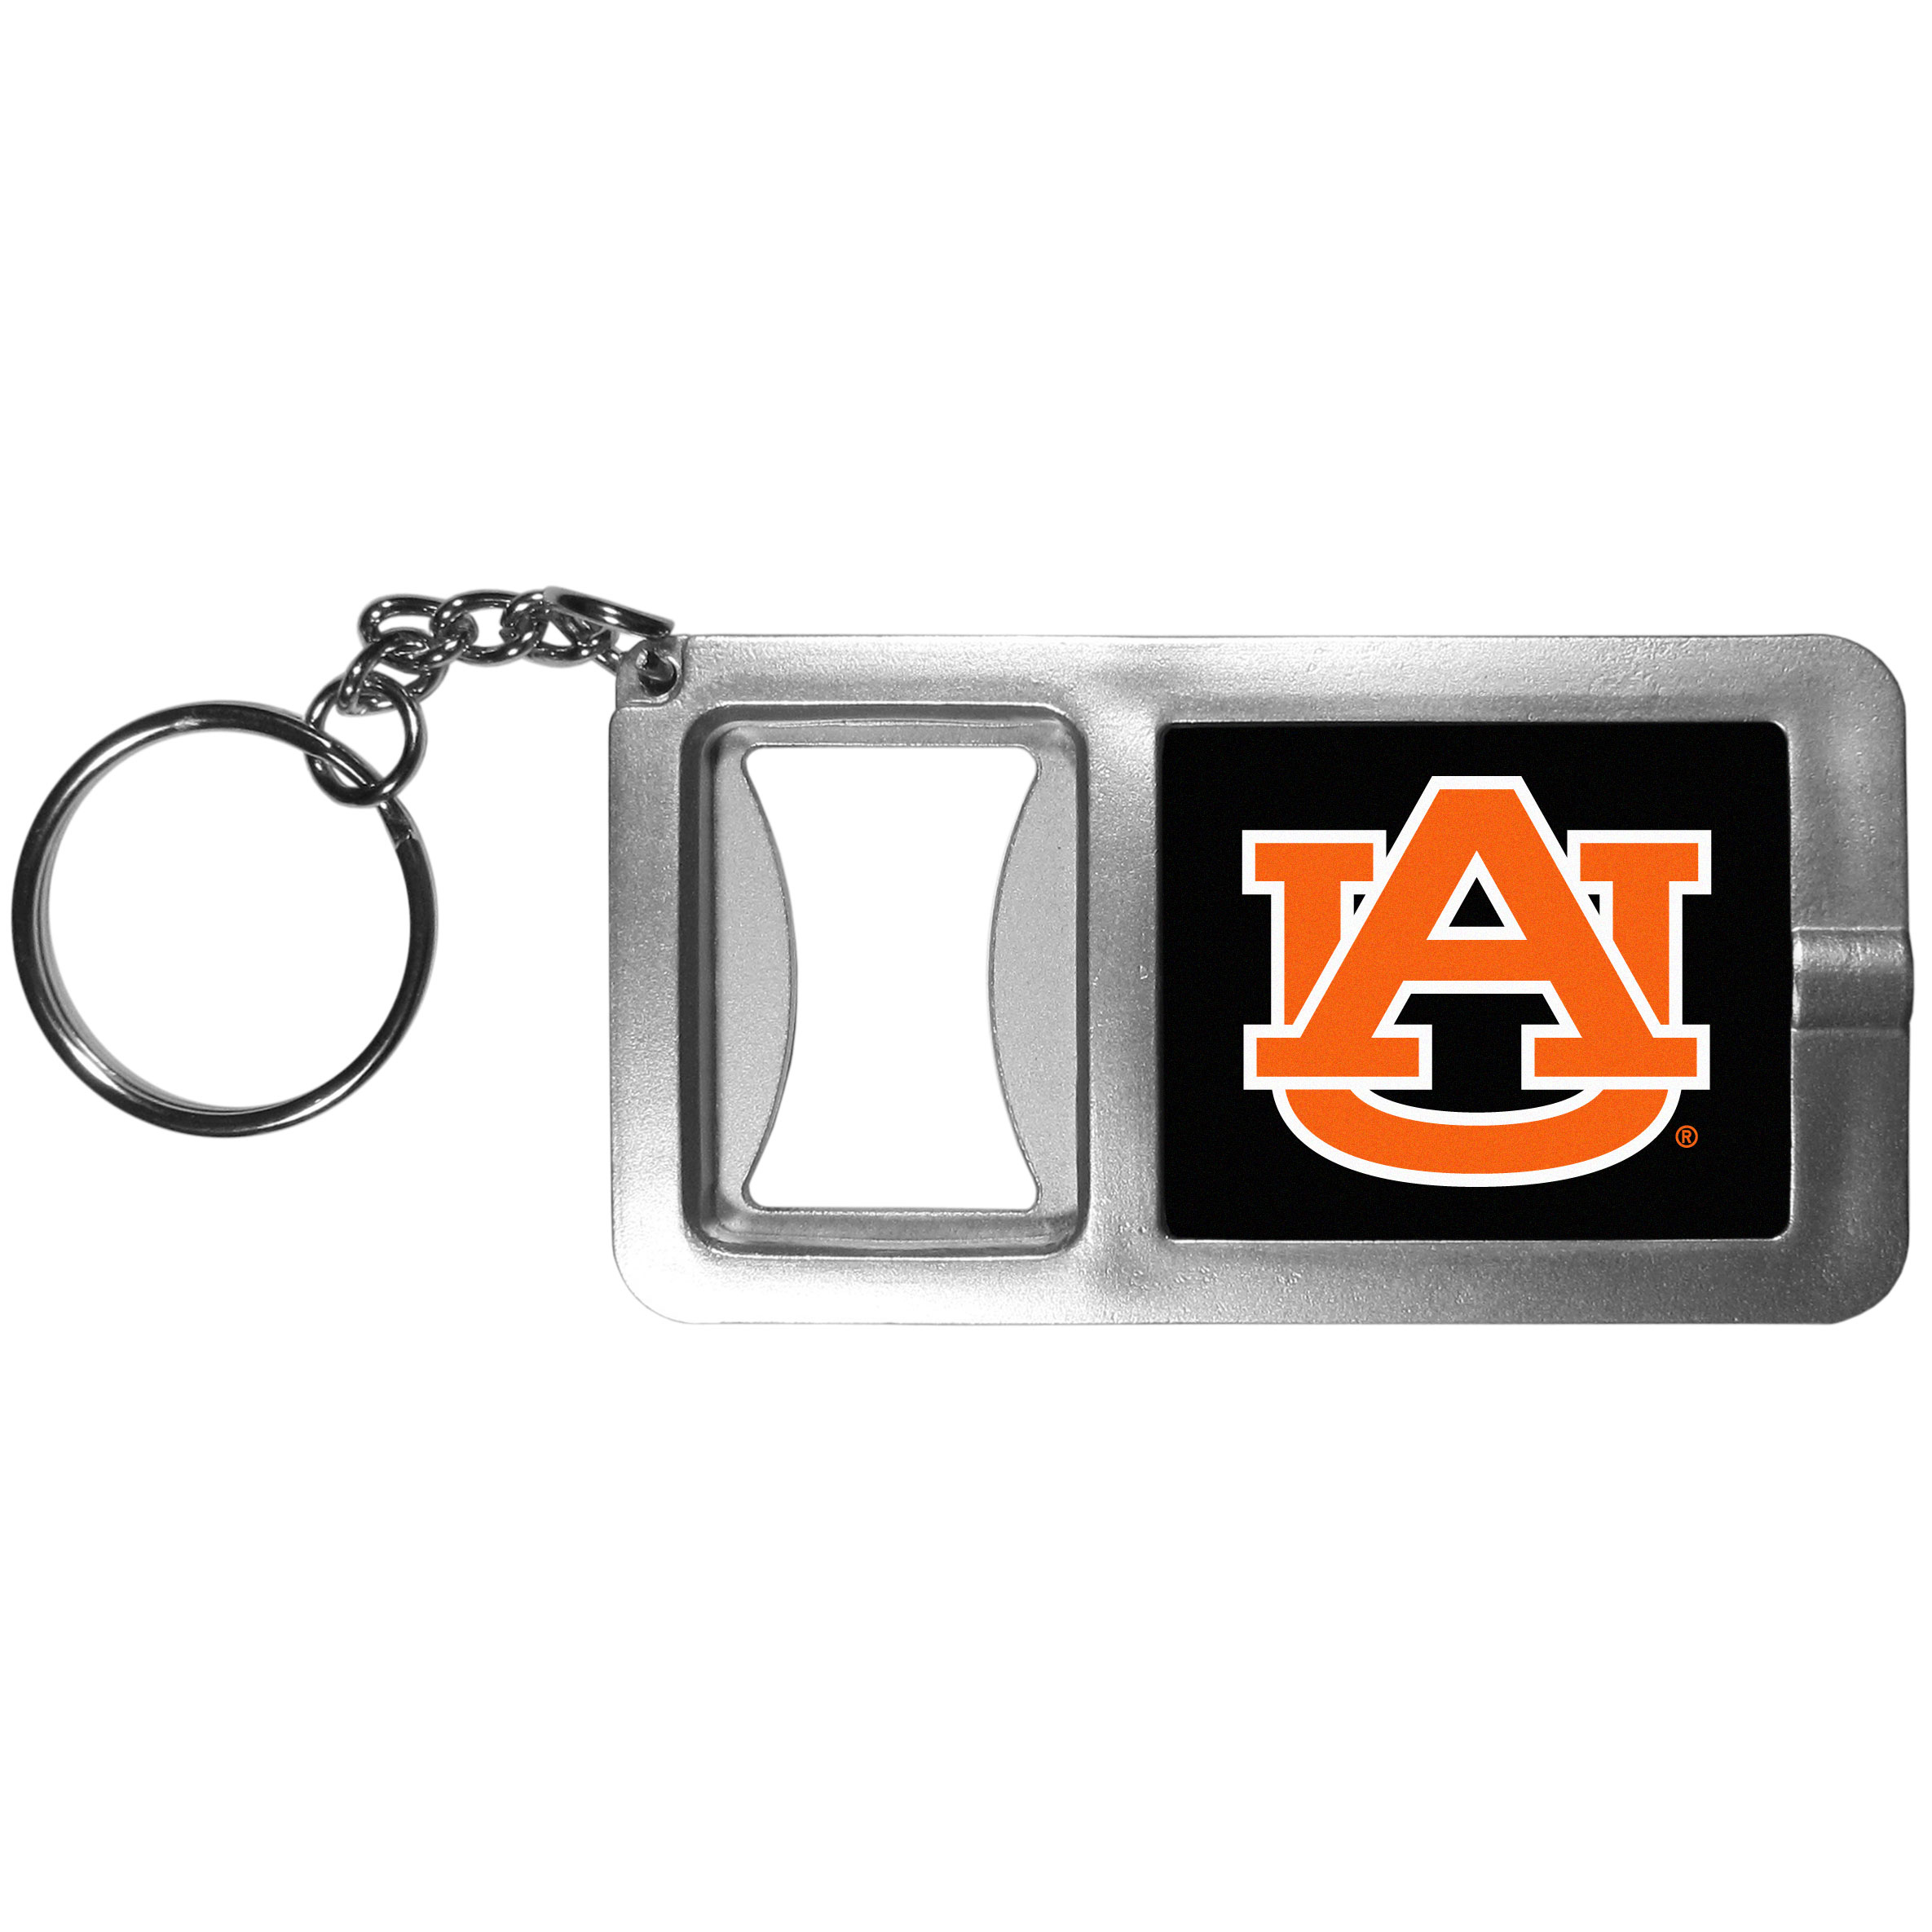 Auburn Tigers Flashlight Key Chain with Bottle Opener - Never be without light with our Auburn Tigers flashlight keychain that features a handy bottle opener feature. This versatile key chain is perfect for camping and travel and is a great way to show off your team pride!